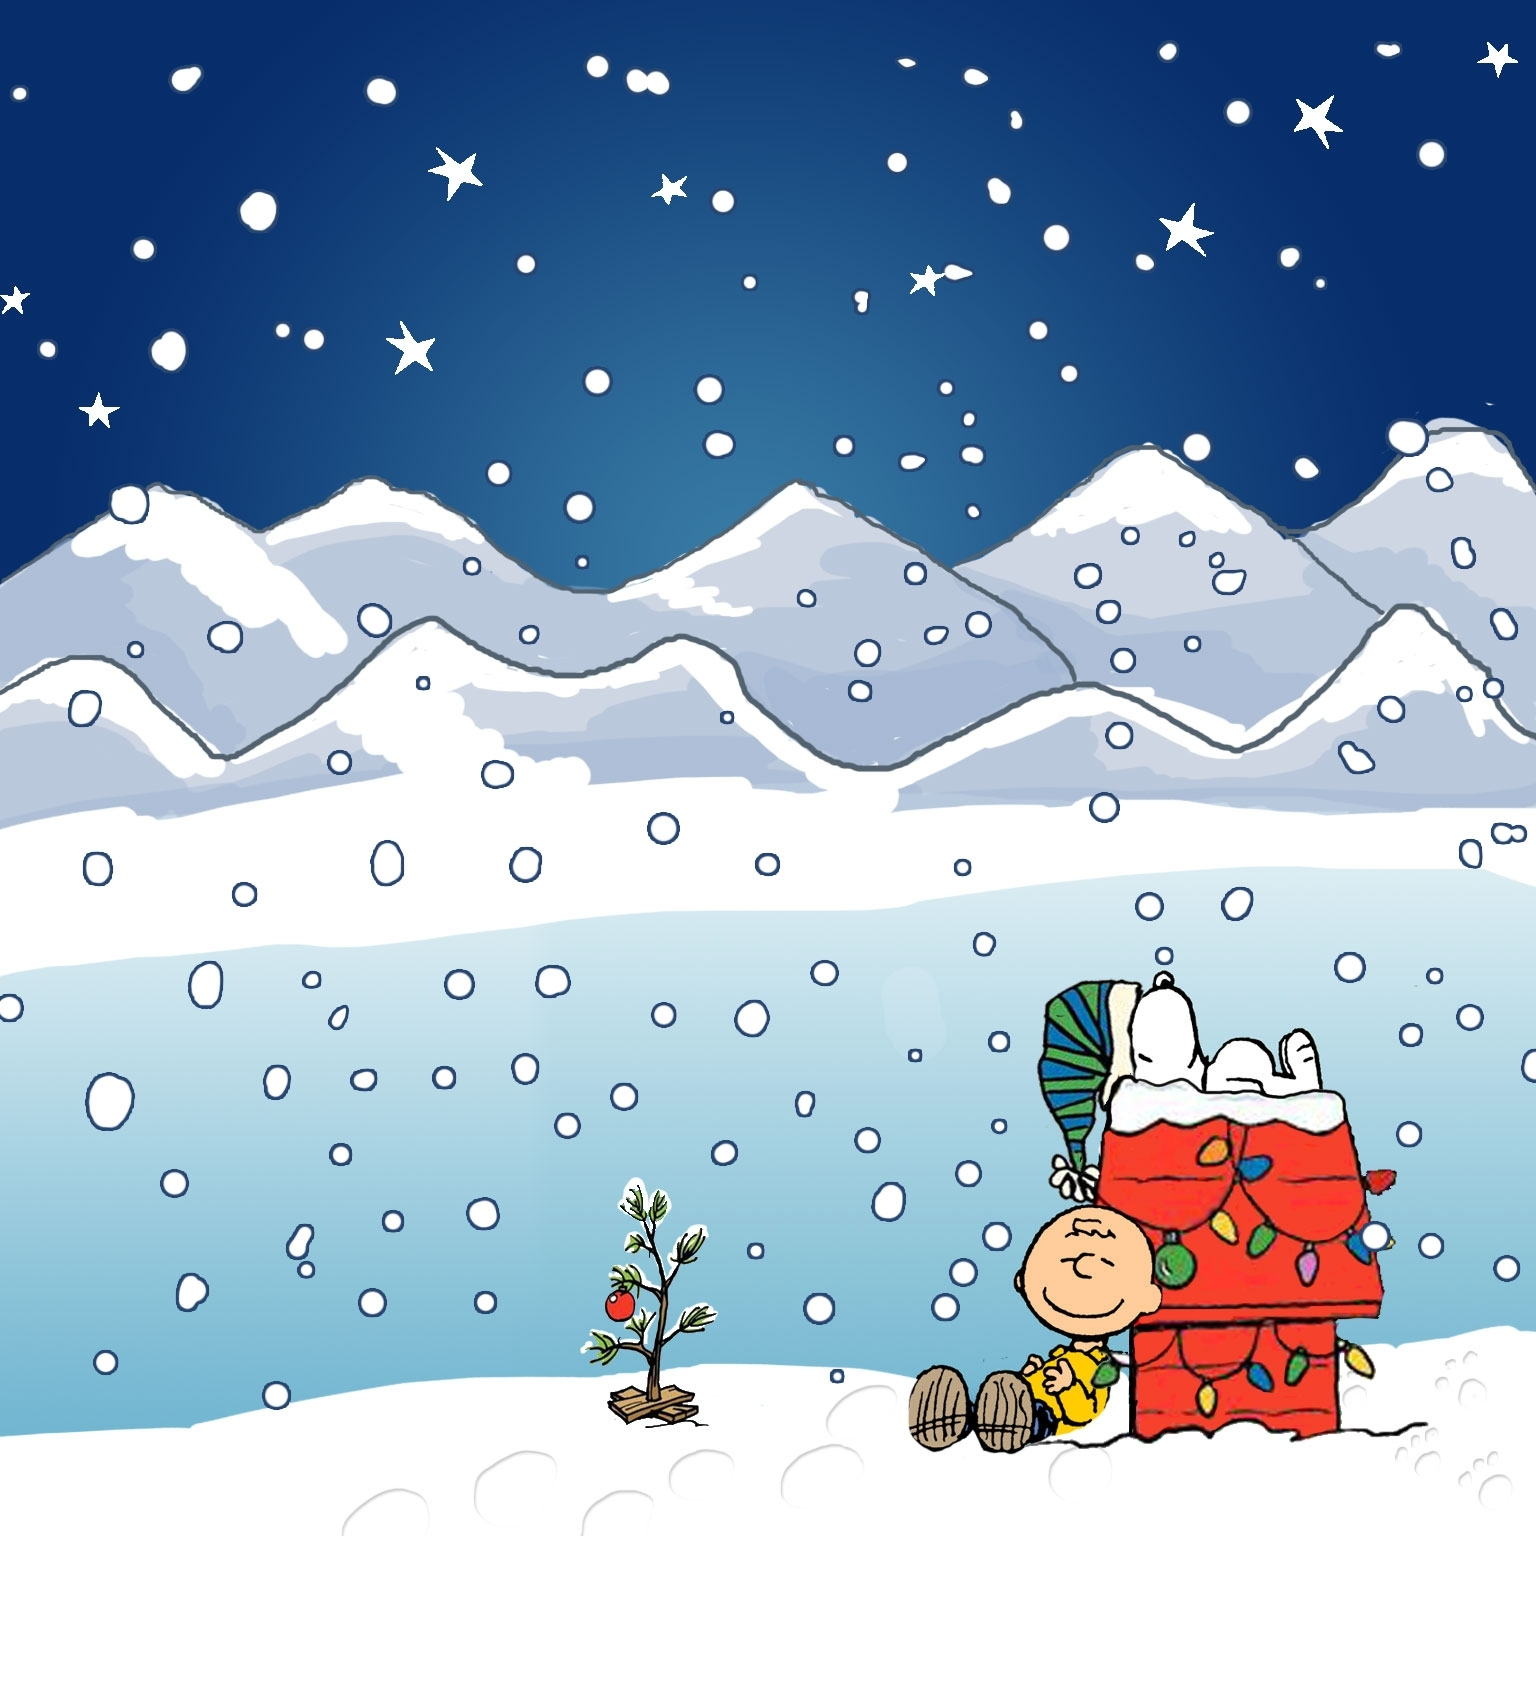 wallpapers for > charlie brown christmas wallpaper iphone